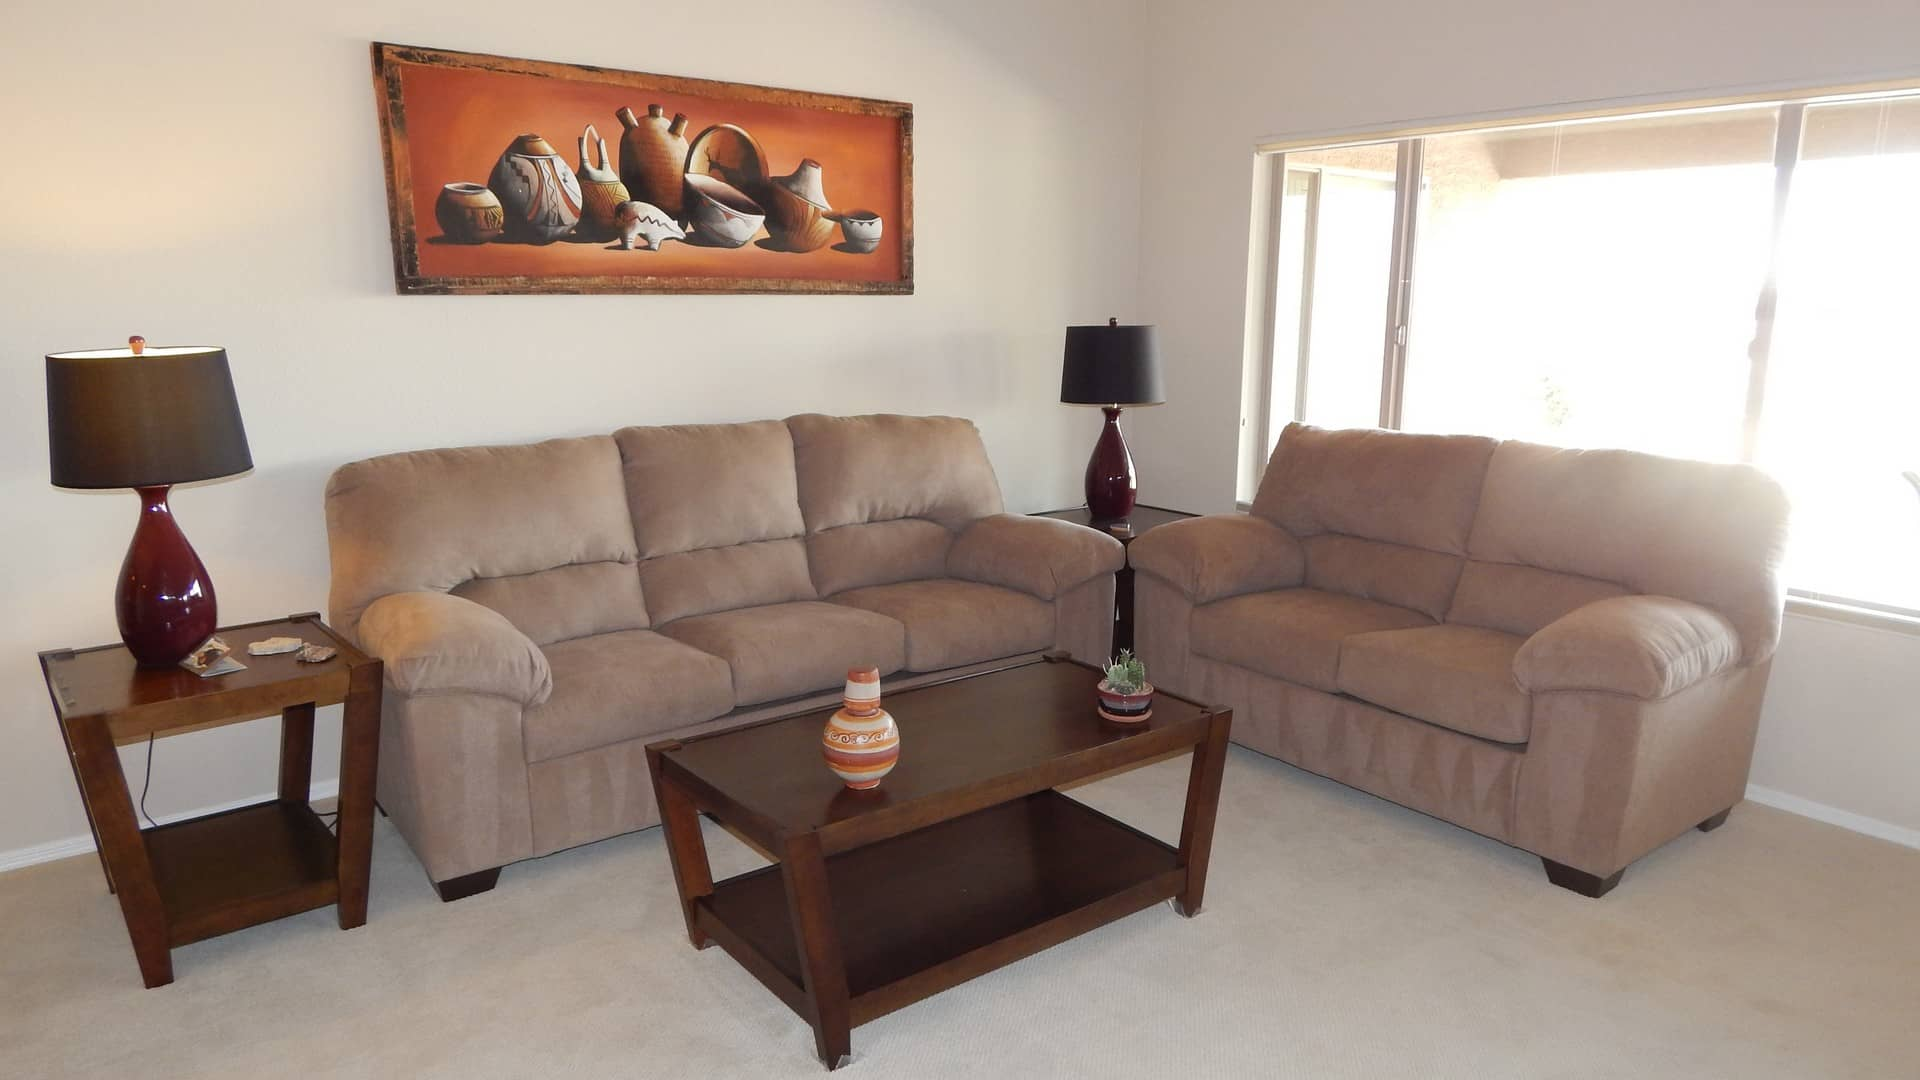 In november we added plantation shutters and i furnished with a sofa - 3500 Per Night